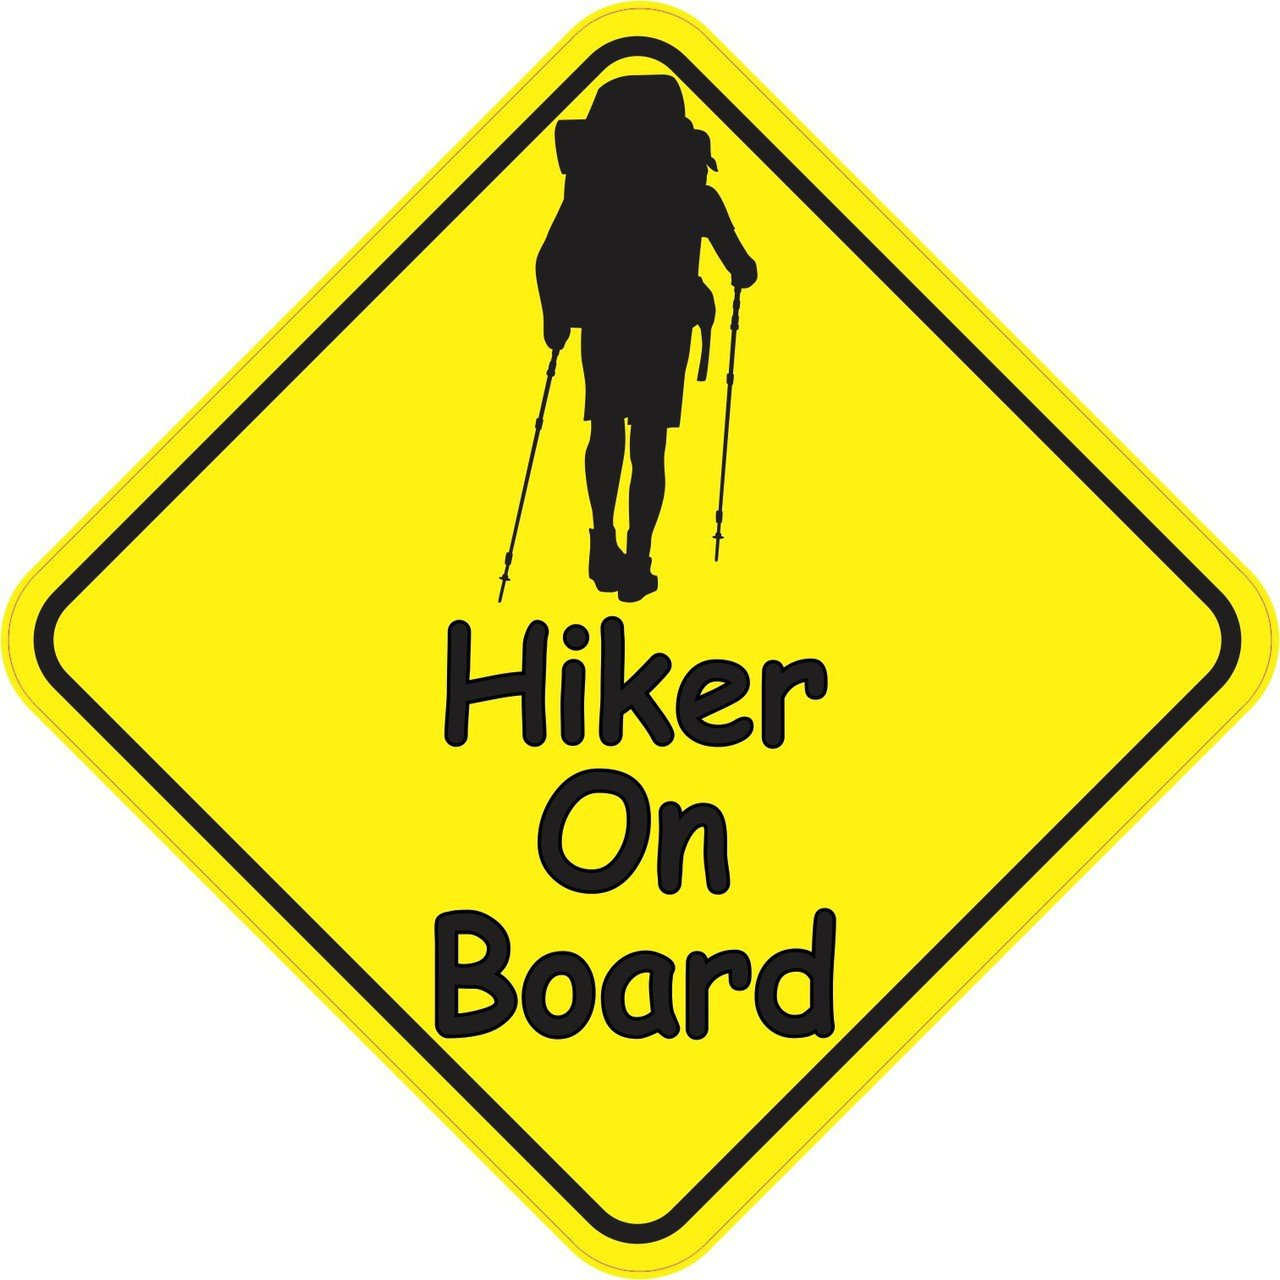 5in x 5in Hiker On Board Magnet Vinyl Caution Sign Vehicle Bumper Magnets